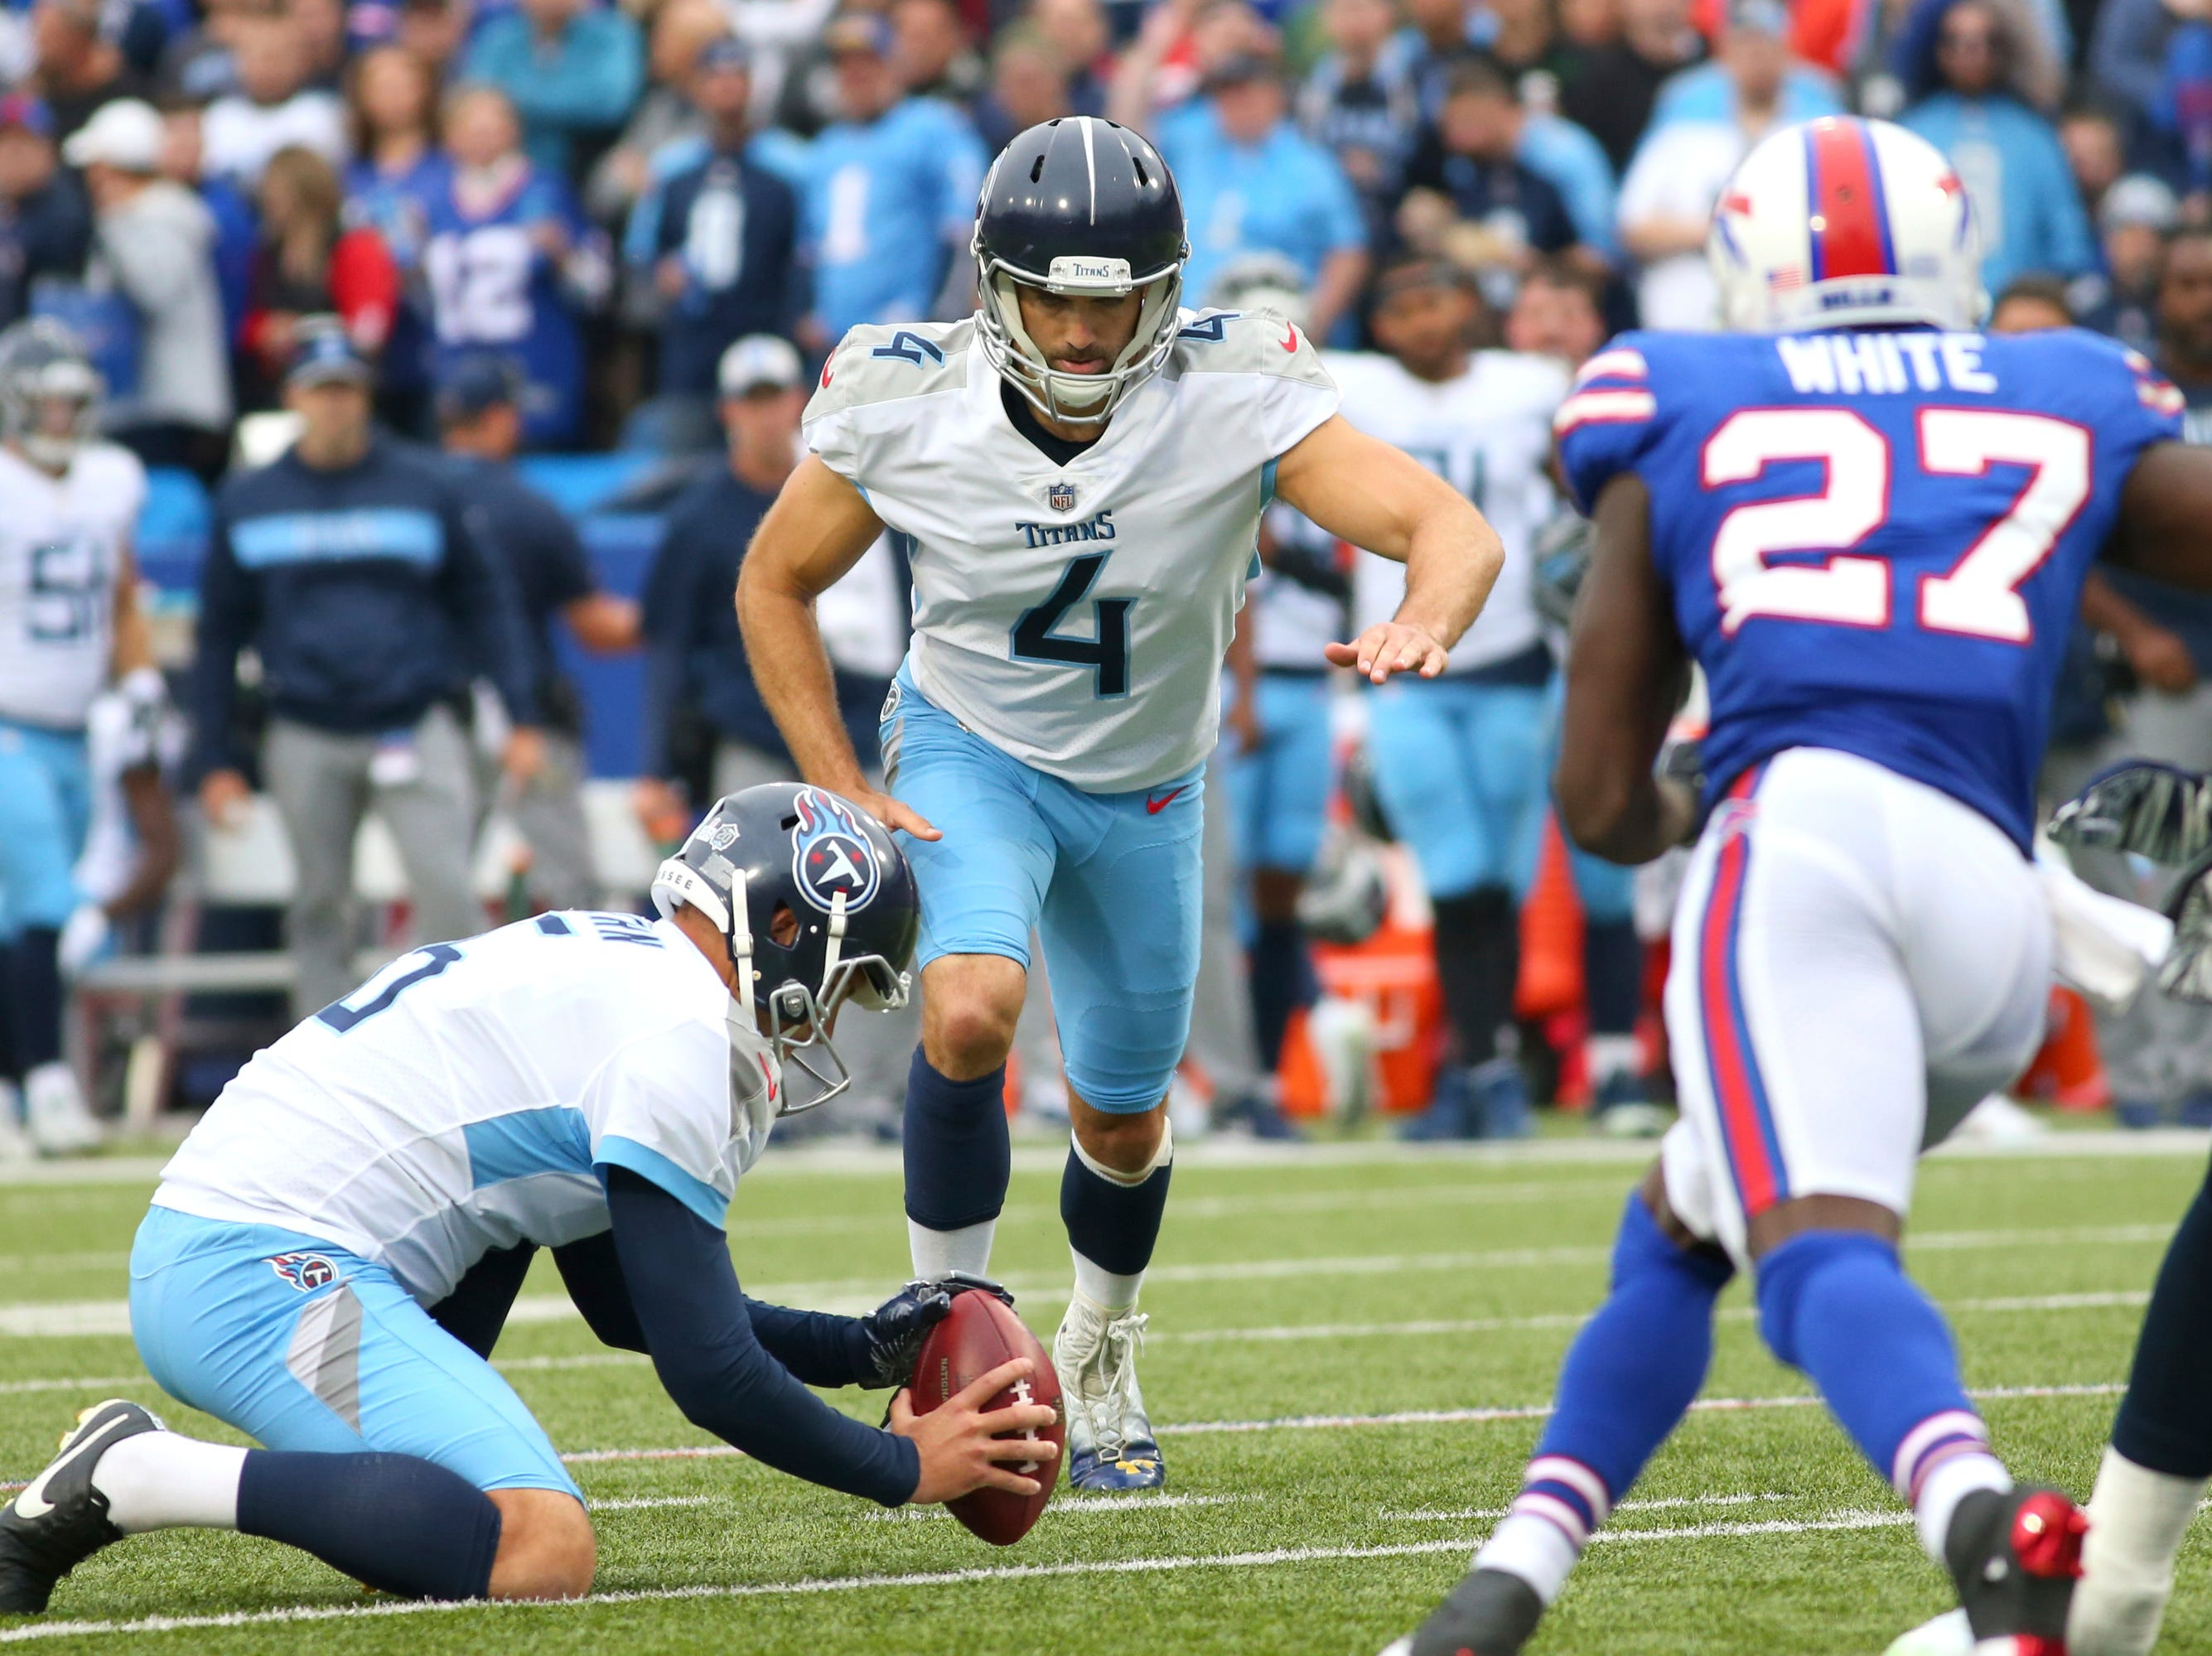 Tennessee Titans kicker Ryan Succop (4) kick a field goal against the Buffalo Bills during the first half of an NFL football game, Sunday, Oct. 7, 2018, in Orchard Park, N.Y.